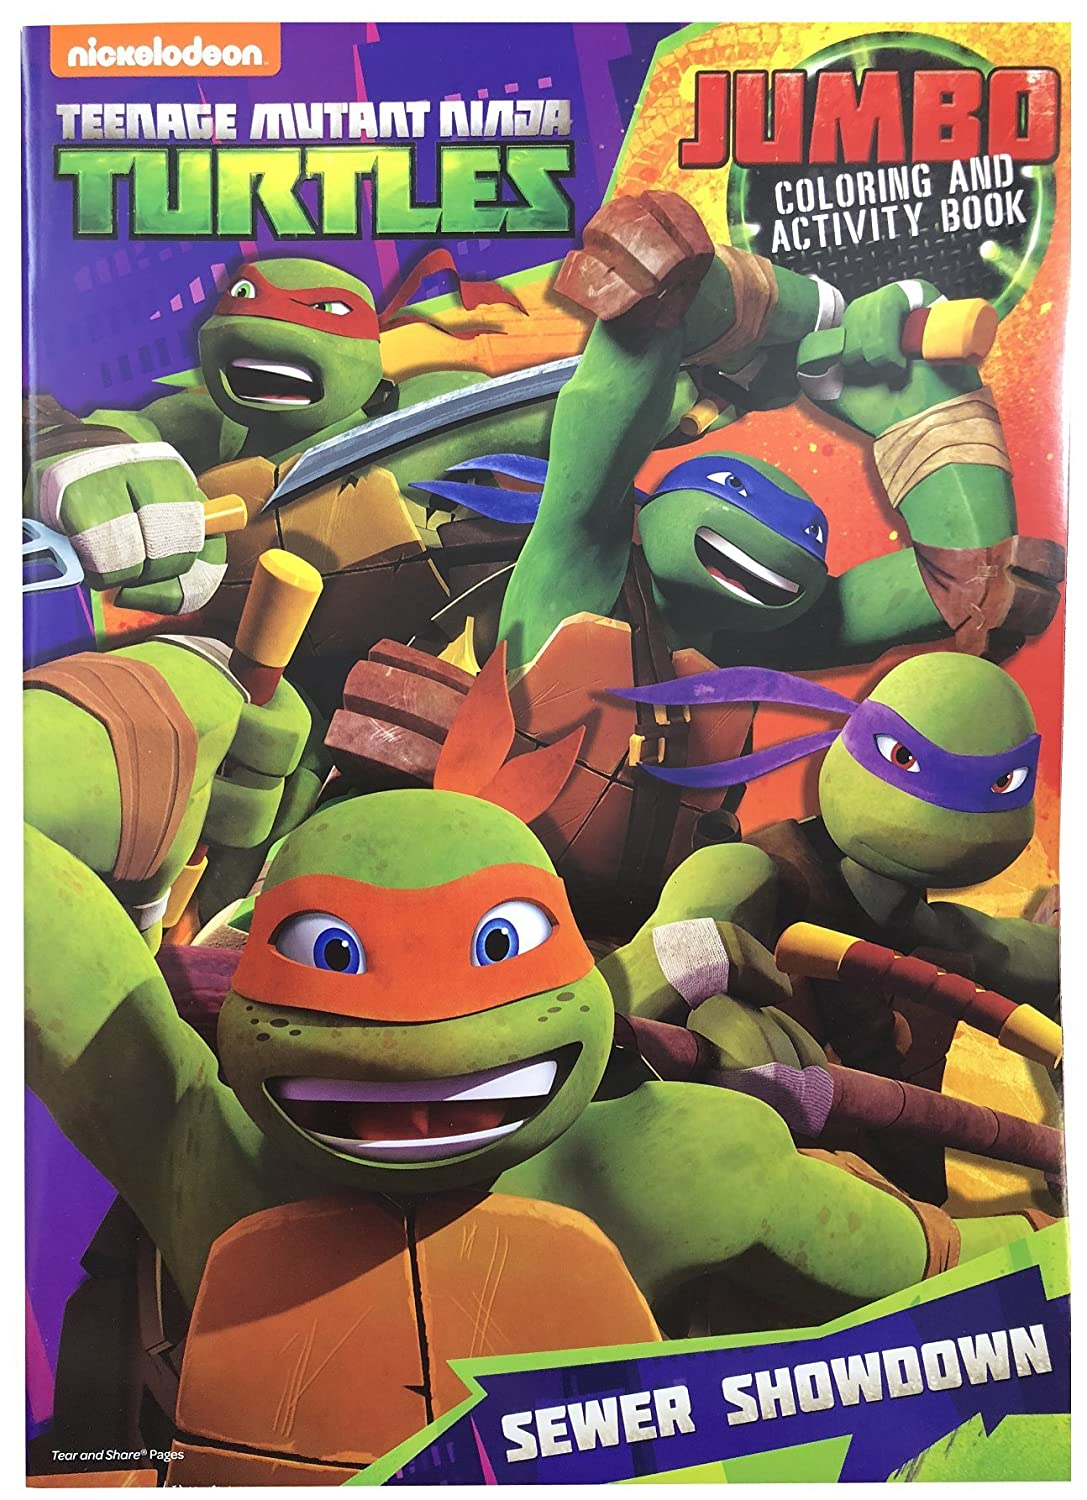 Amazon.com: Teenage Mutant Ninja Turtles para colorear y ...